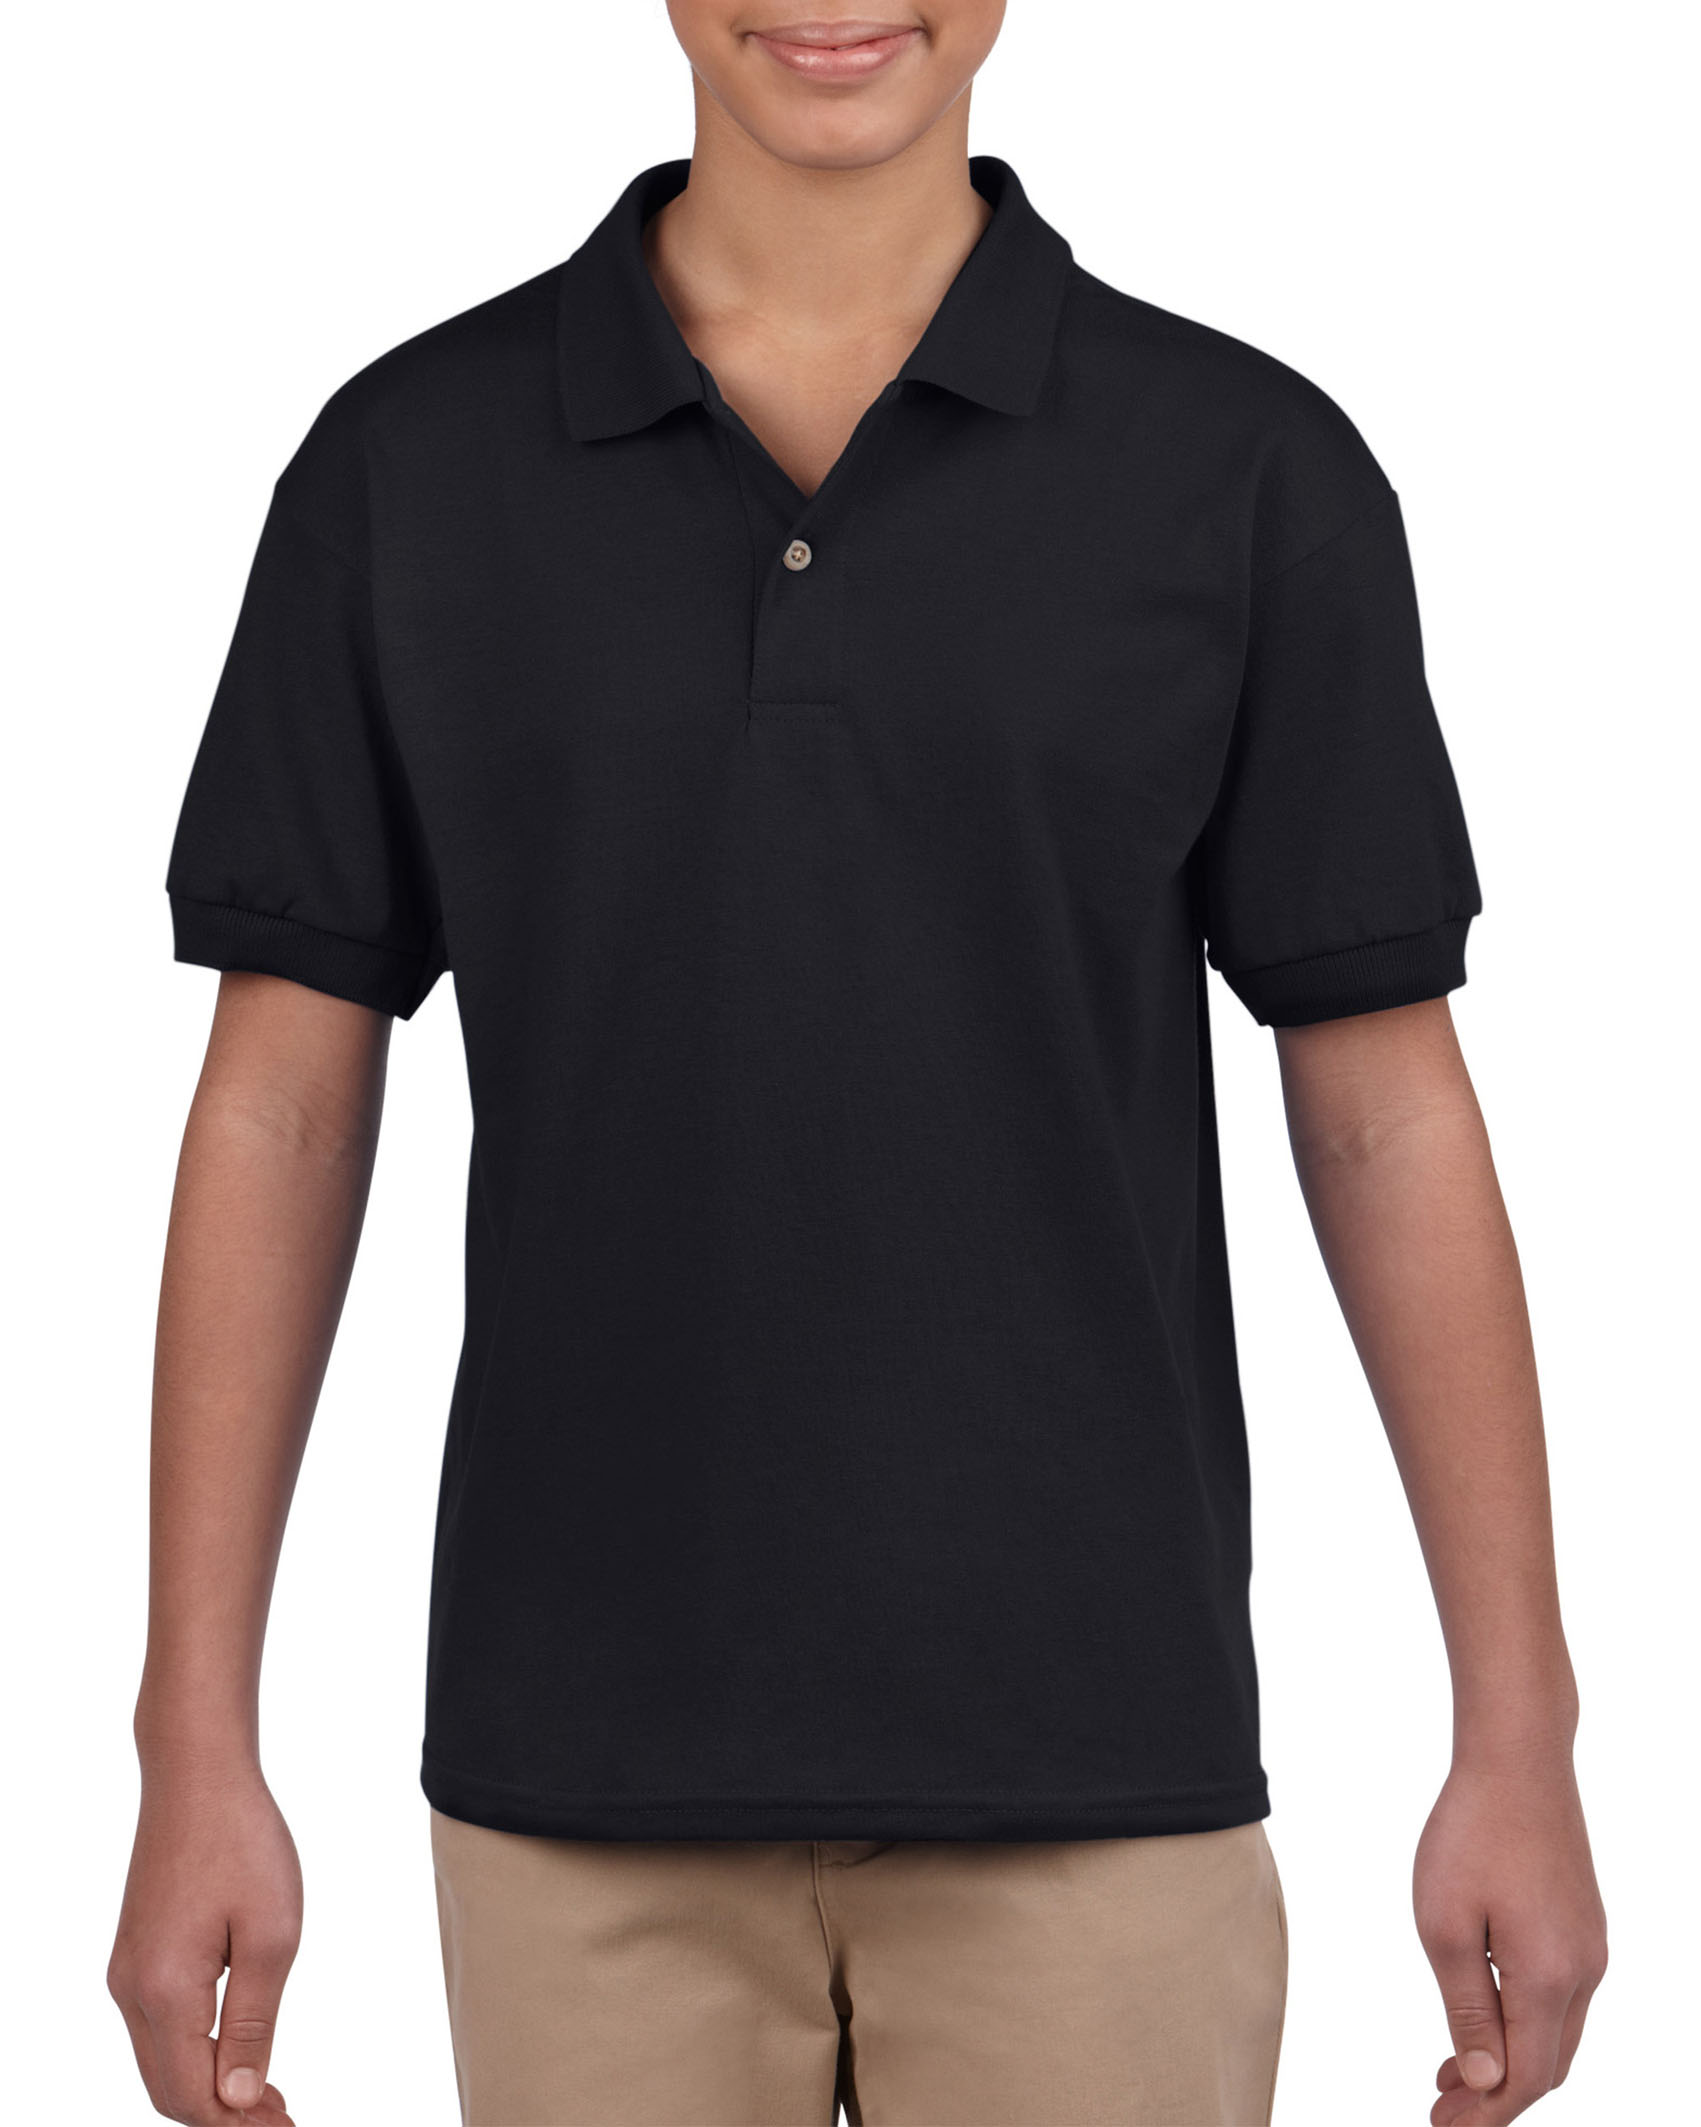 Gildan Polo Dryblend Jersey SS for kids